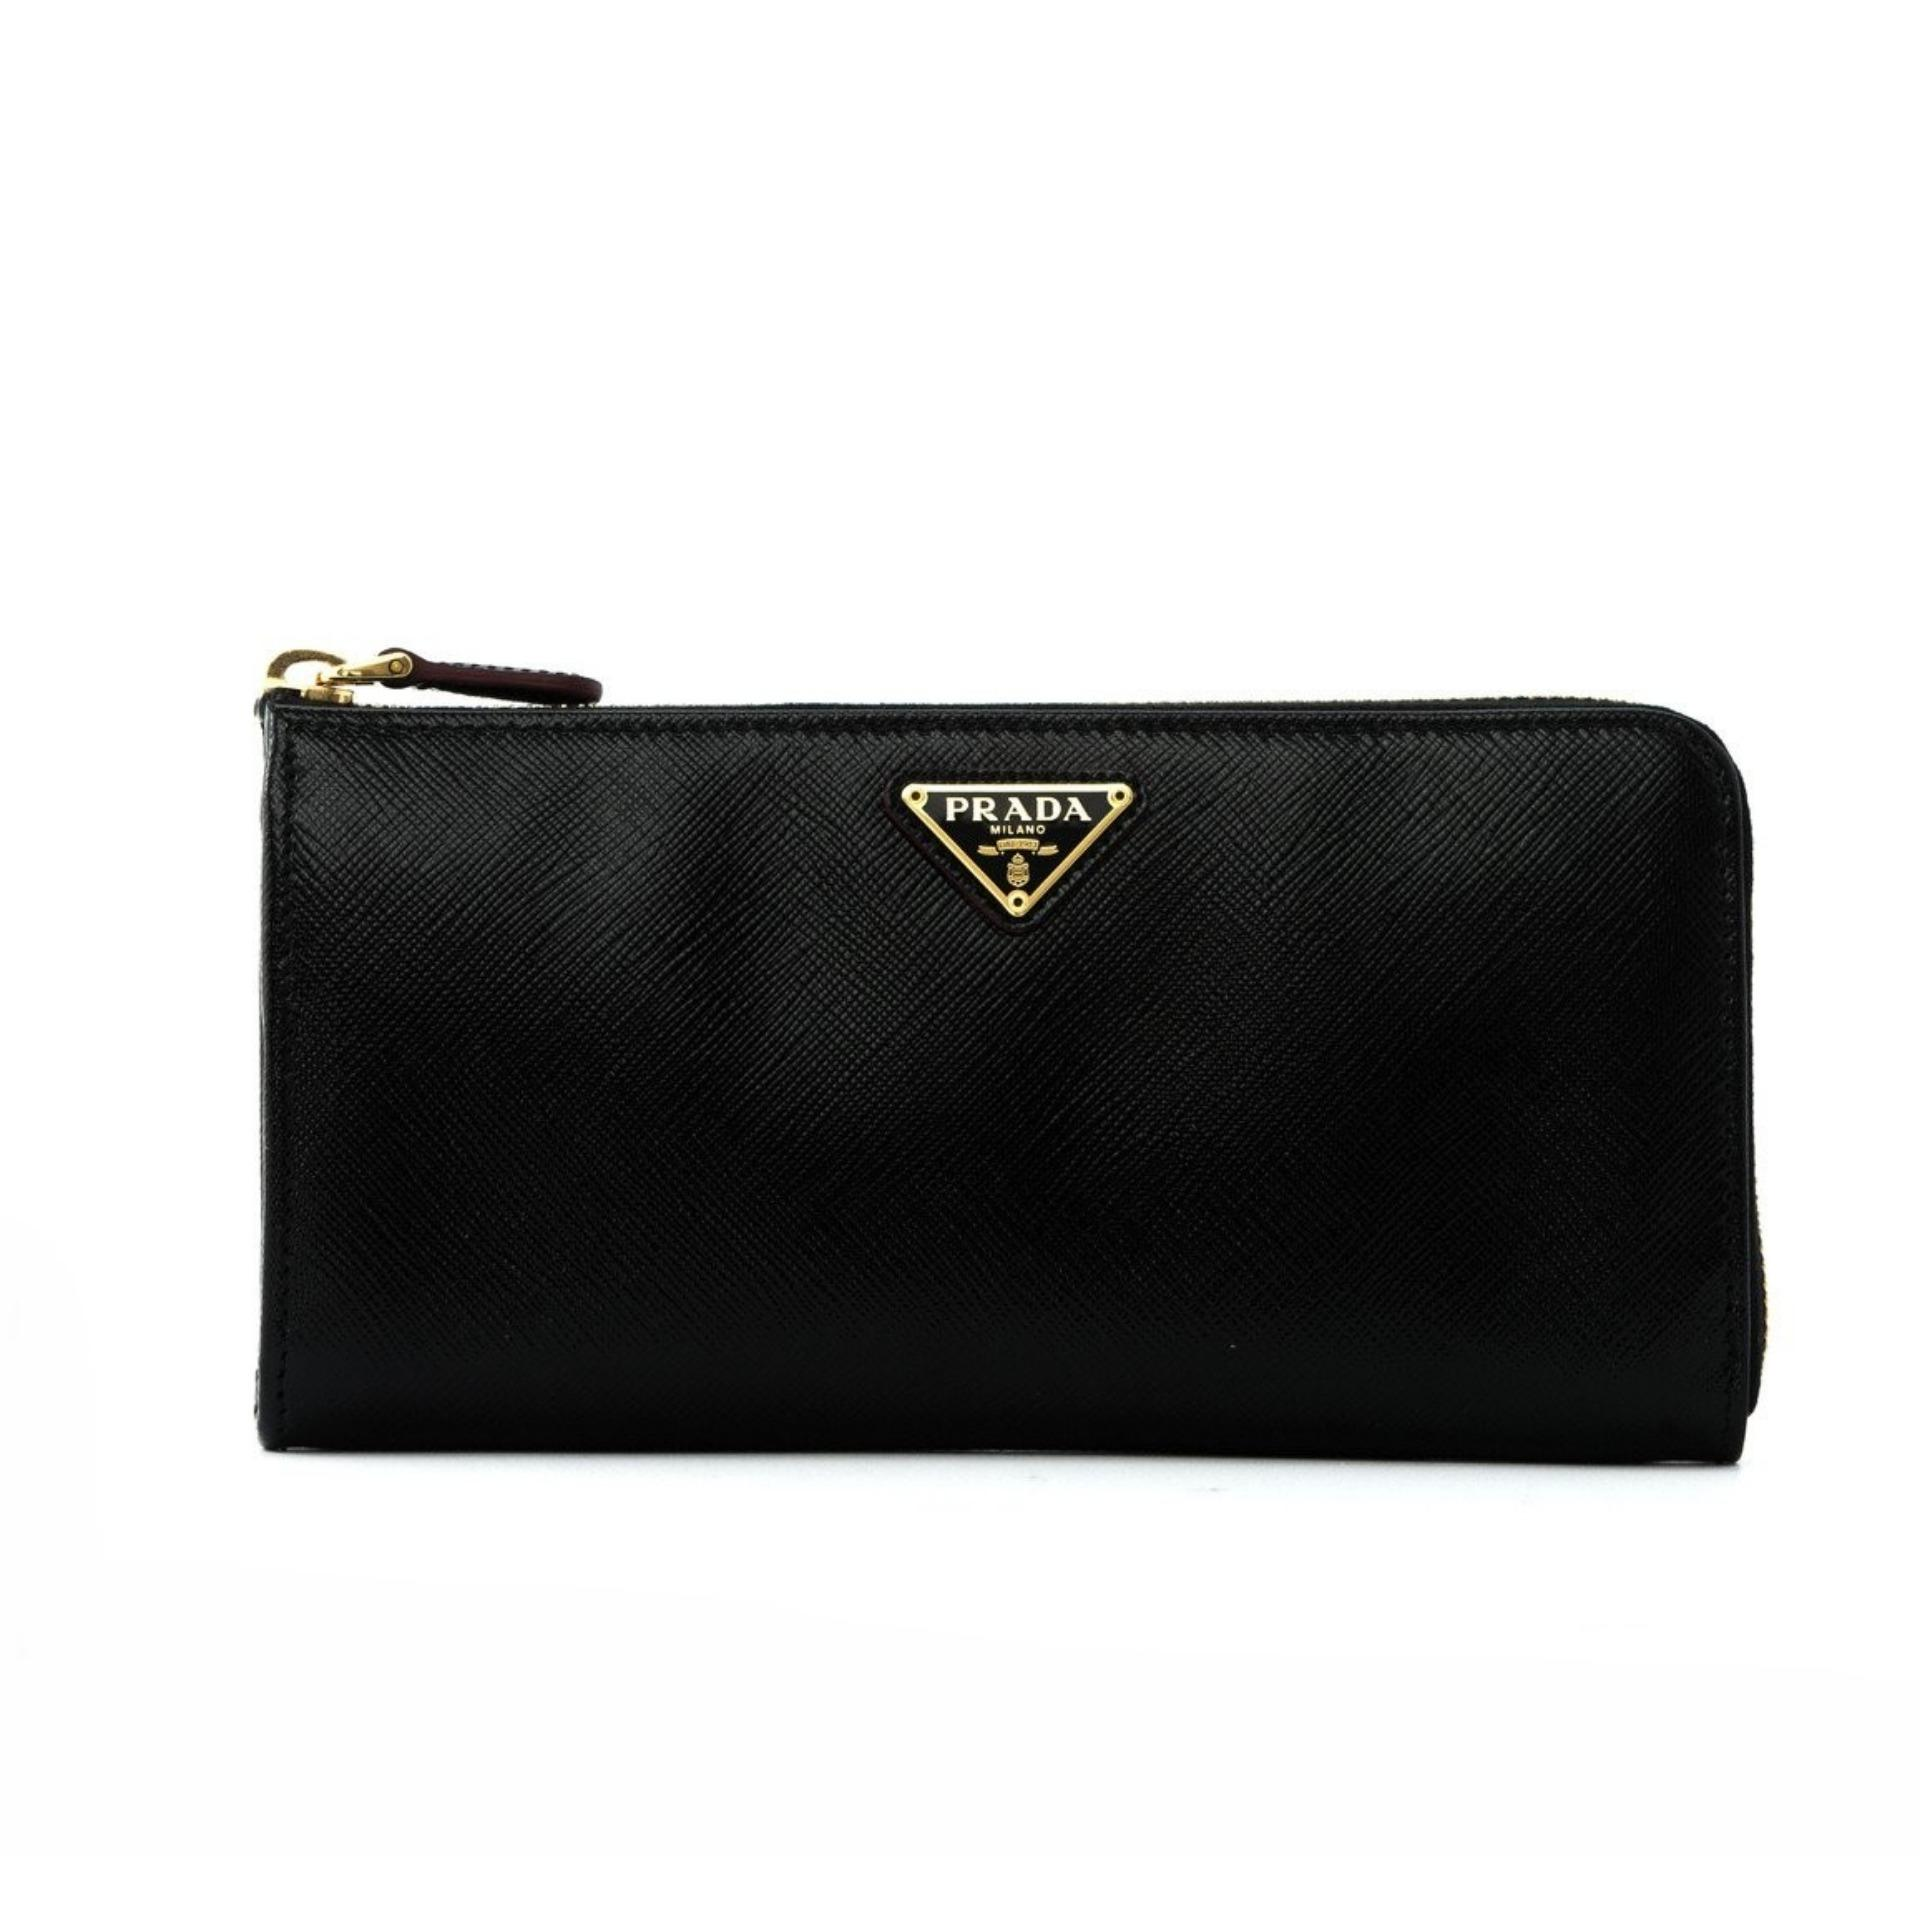 Wallets - Wallet With Flap Saffiano Leather Black - black - Wallets for ladies Prada PX6qN1